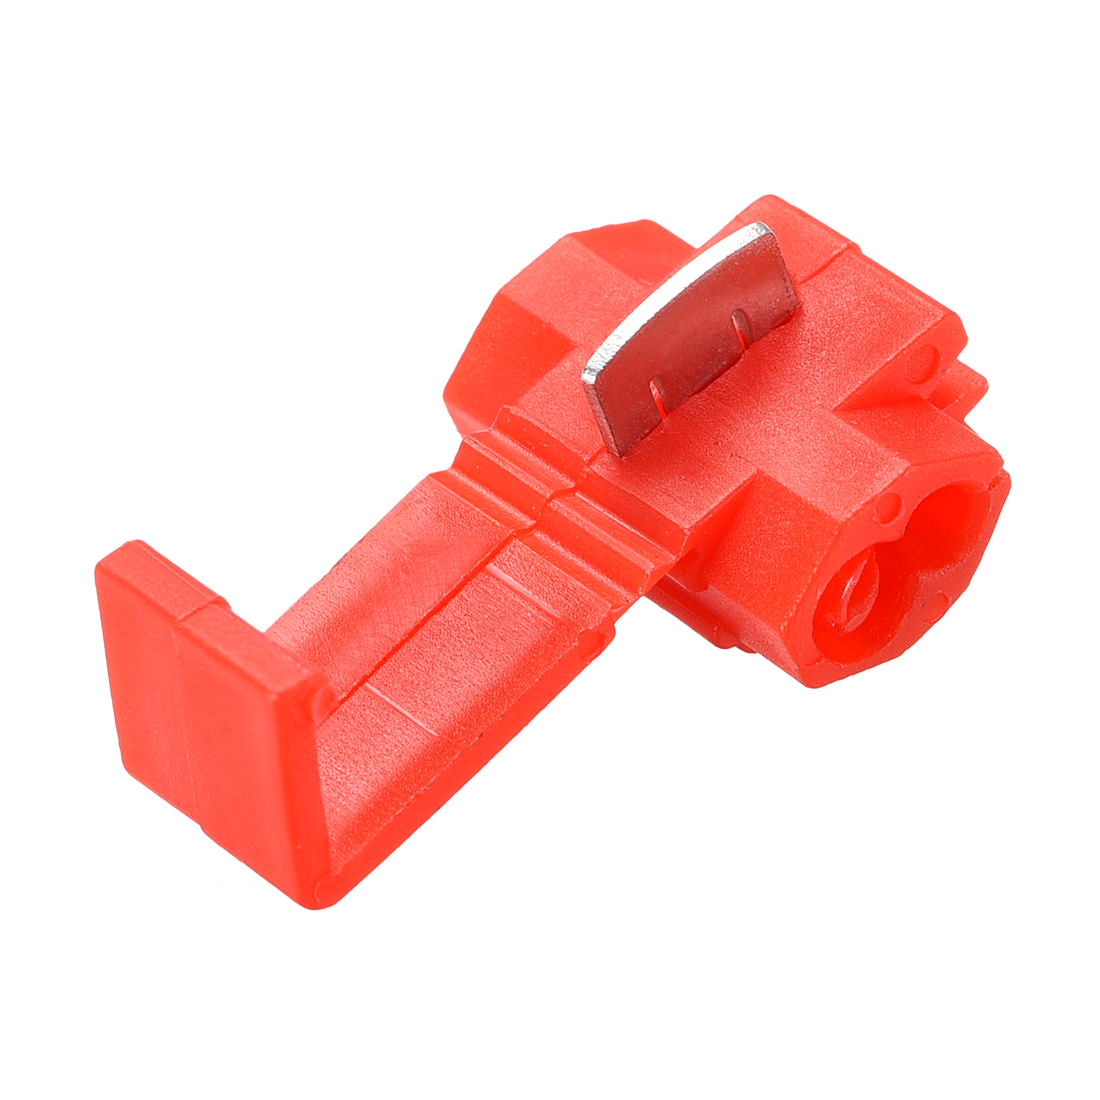 Wire Splice Connector Snap Wire Connector Red for 22-18 AWG